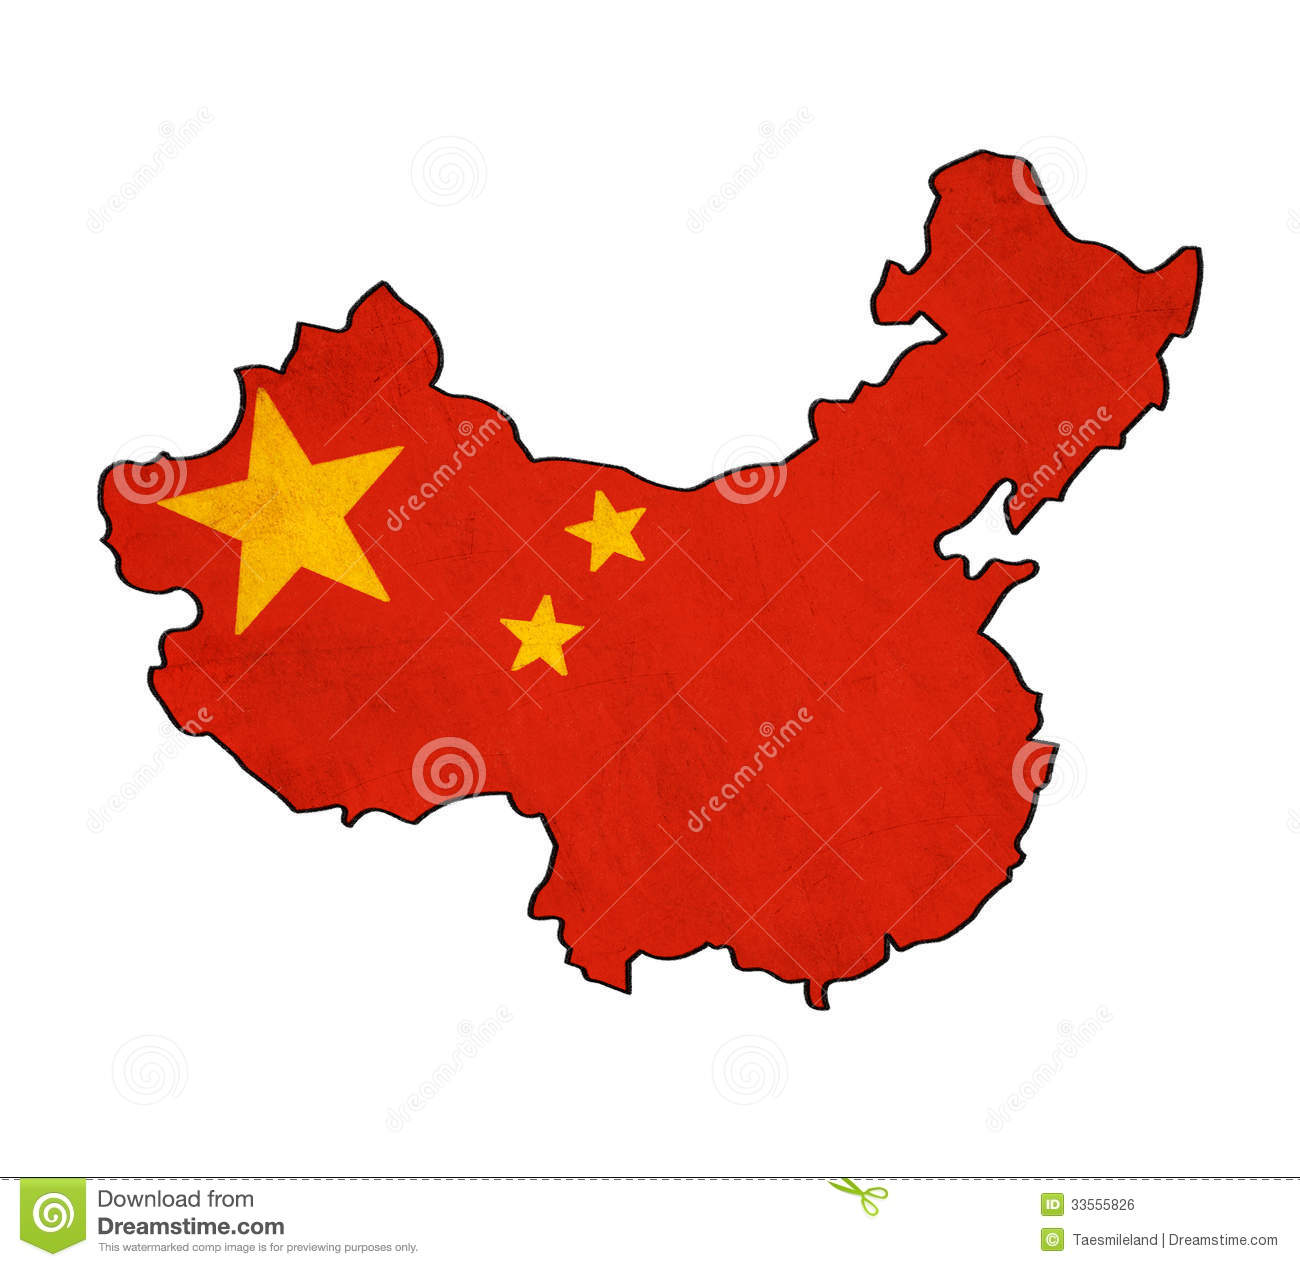 Mapa De China En El Dibujo De La Bandera De China Stock de ...